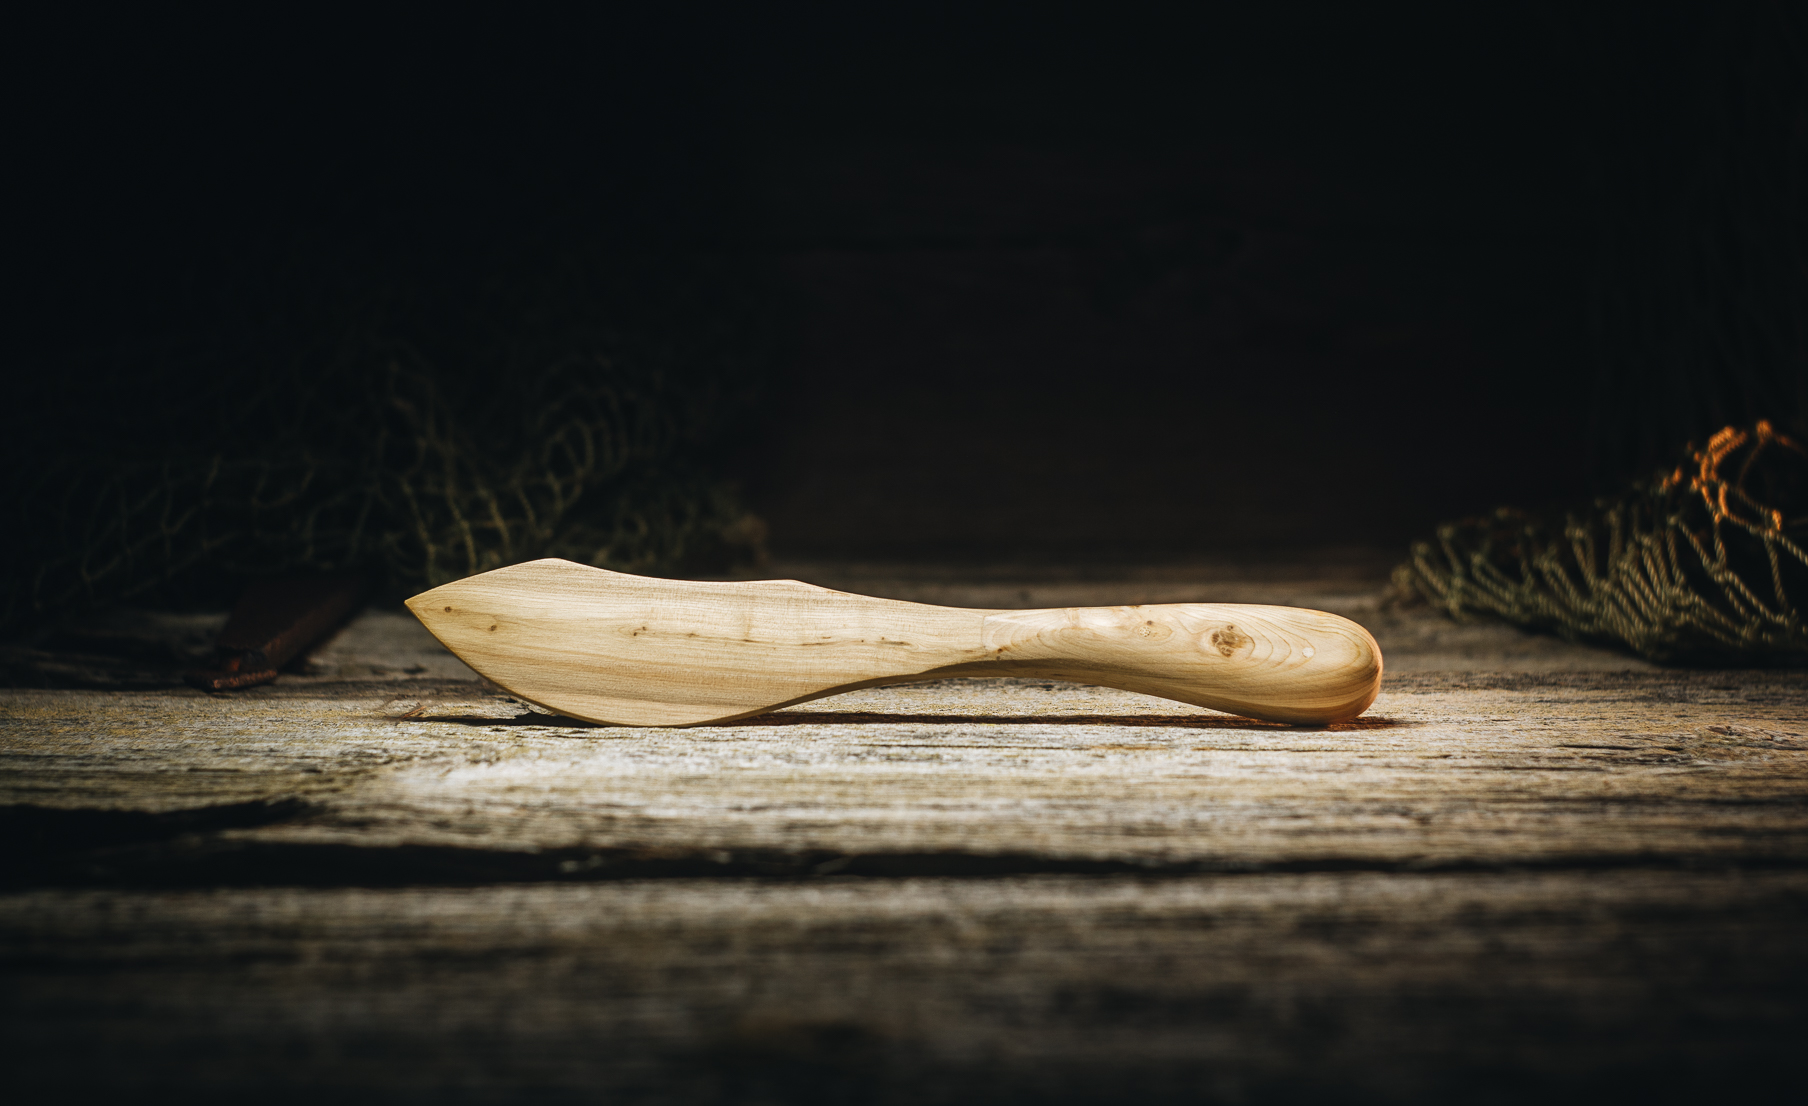 Võinuga puupeaga (kadakas)/ Butter knife wooden (juniper) 170 mm